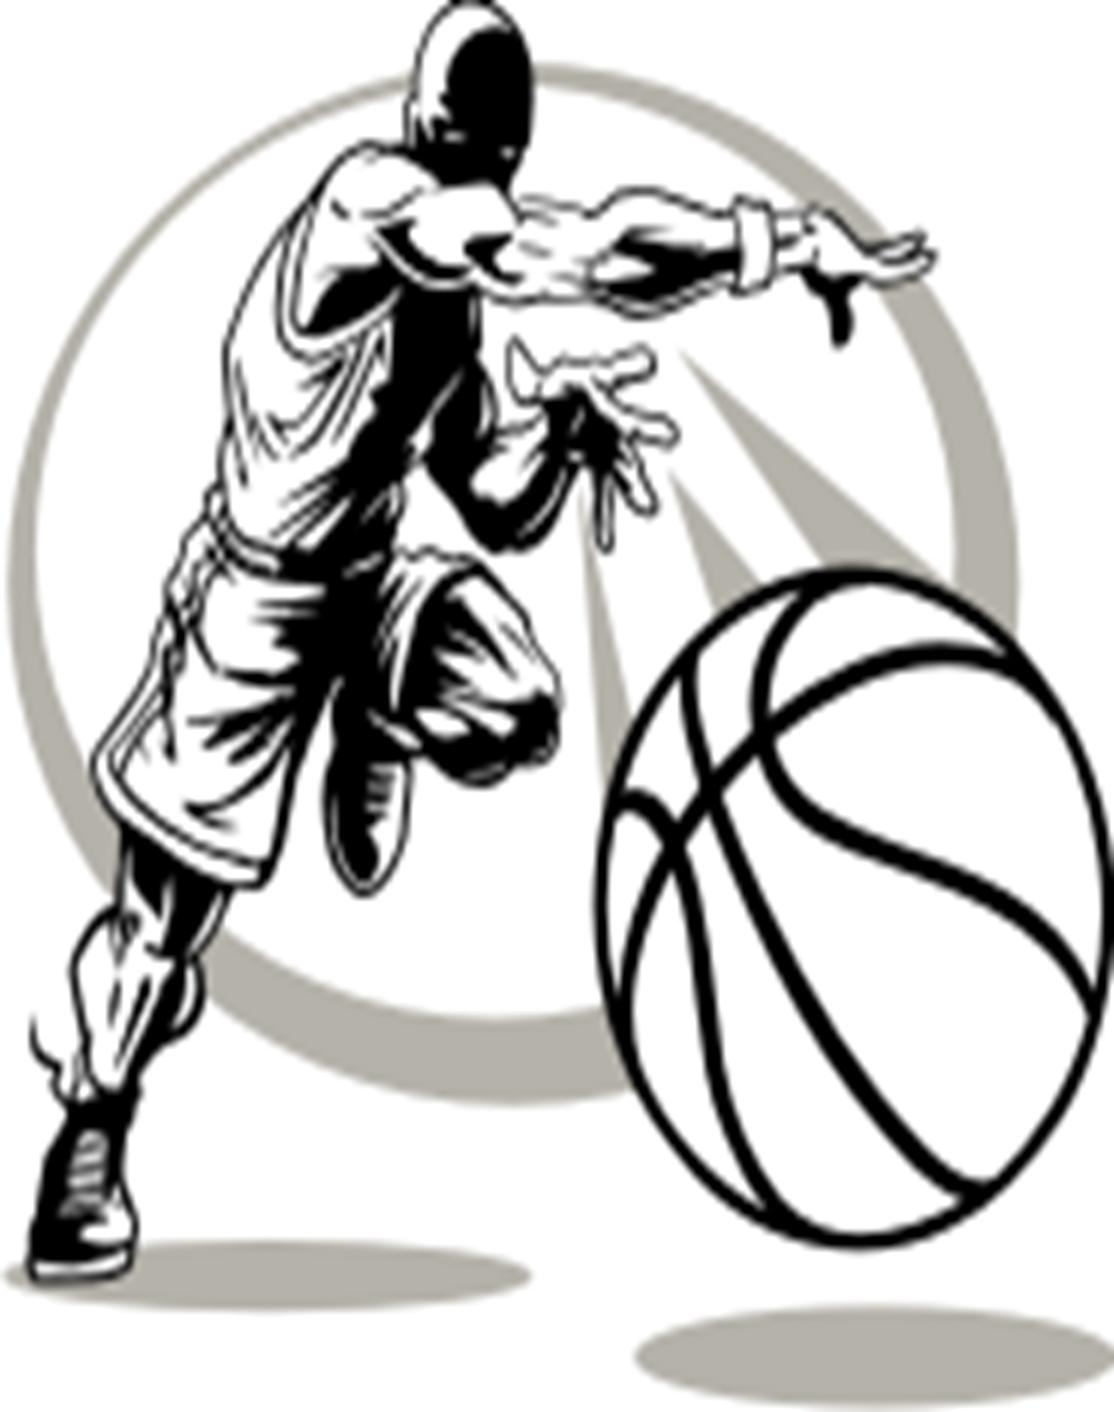 hight resolution of kid basketball player clipart free images